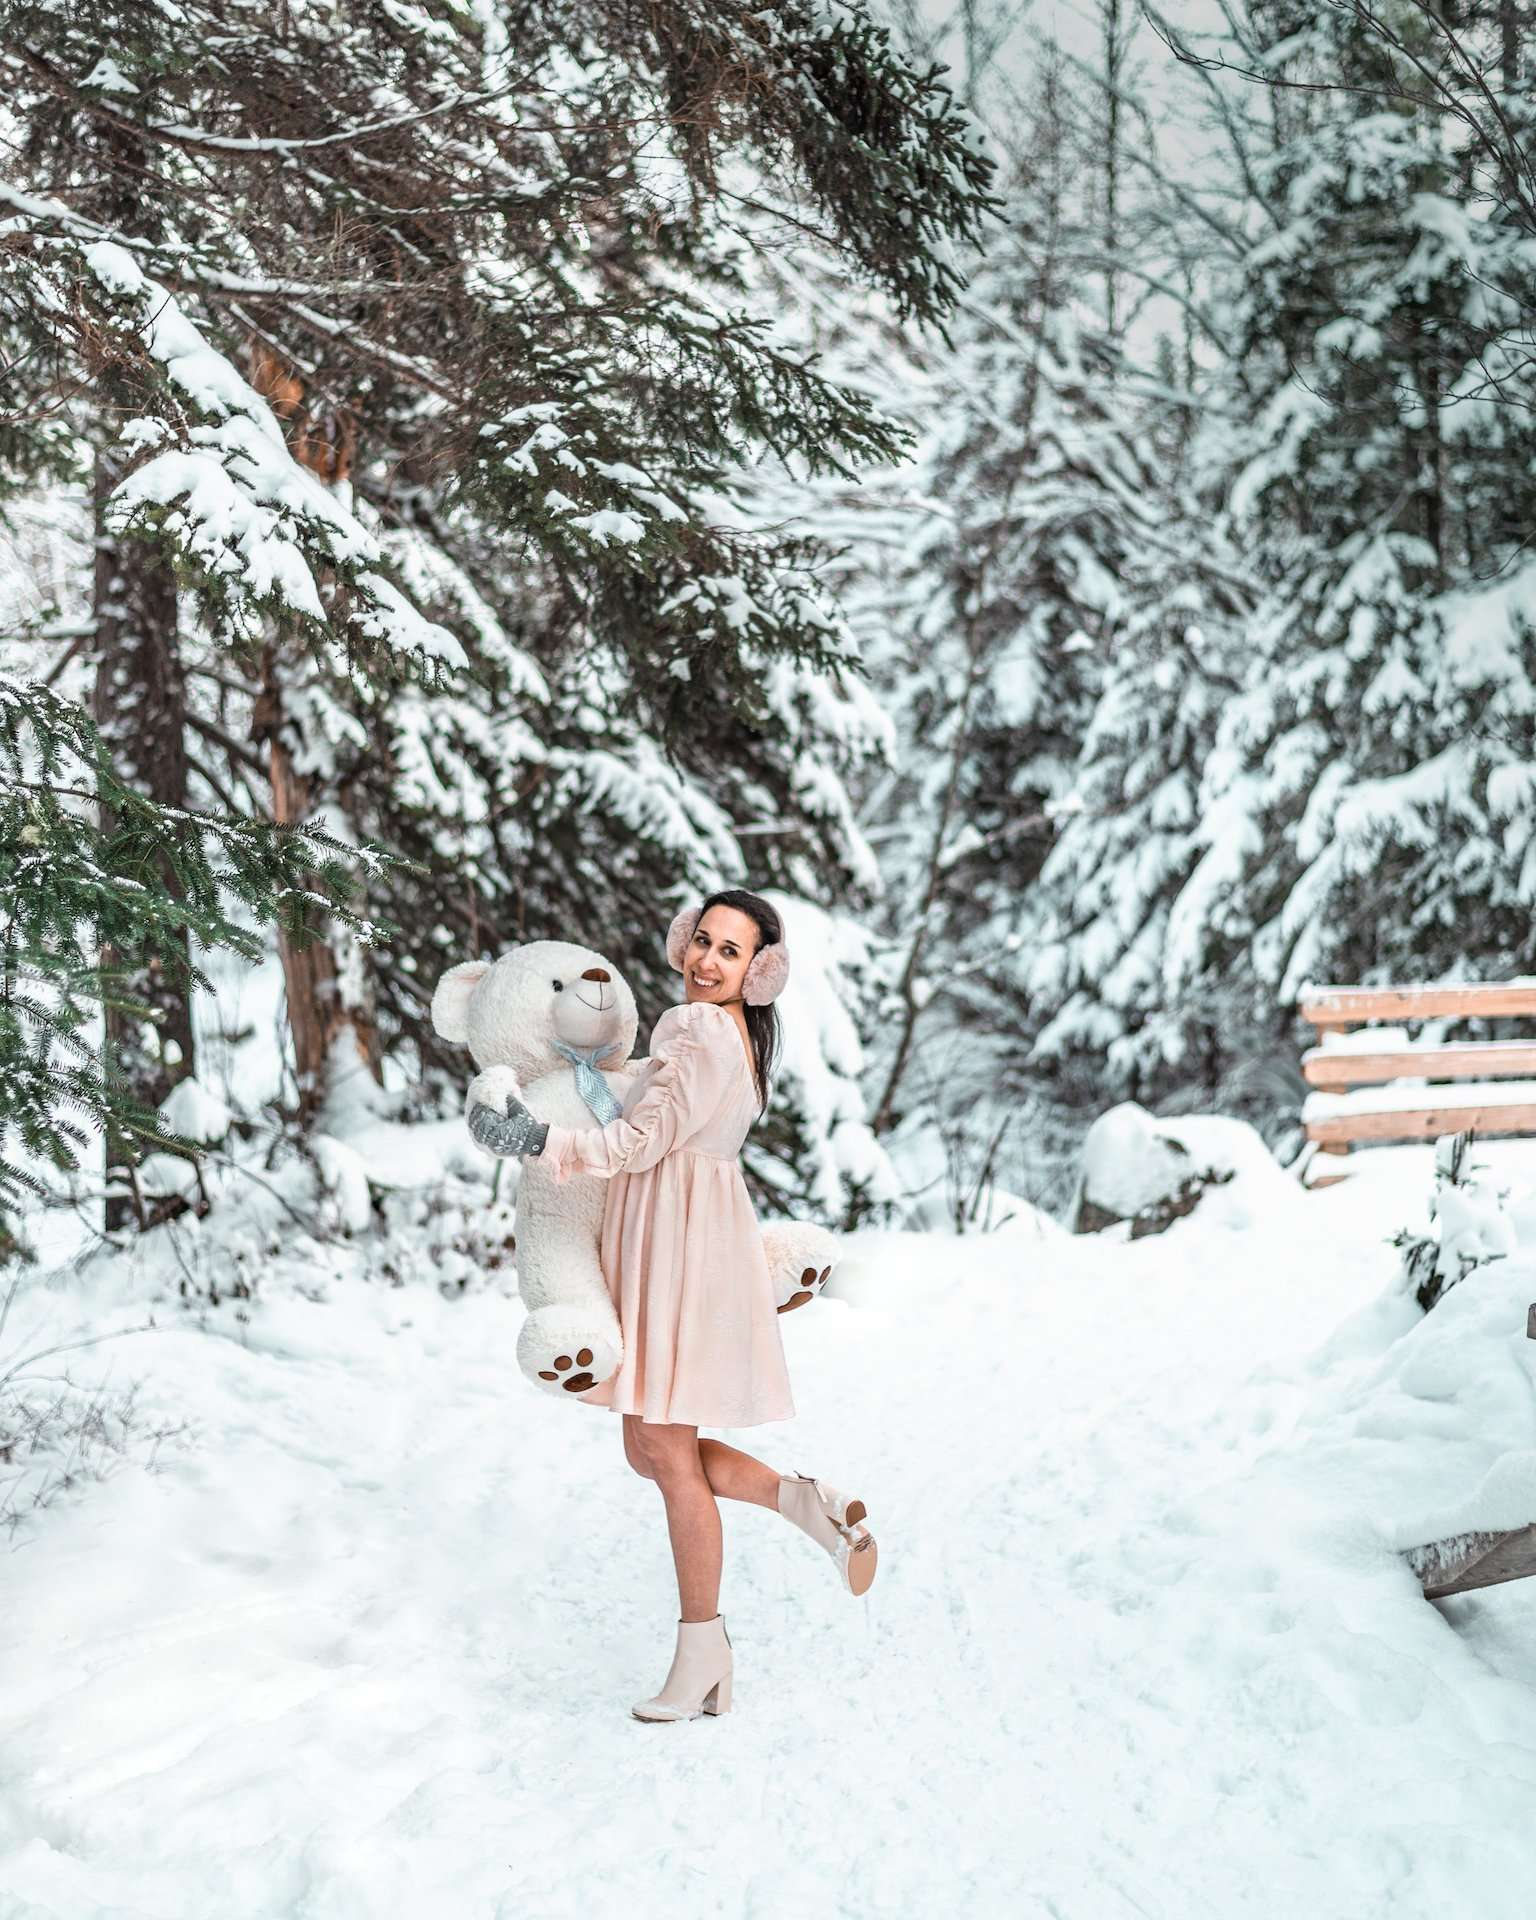 girl in snowy woods with oversized teddy bear